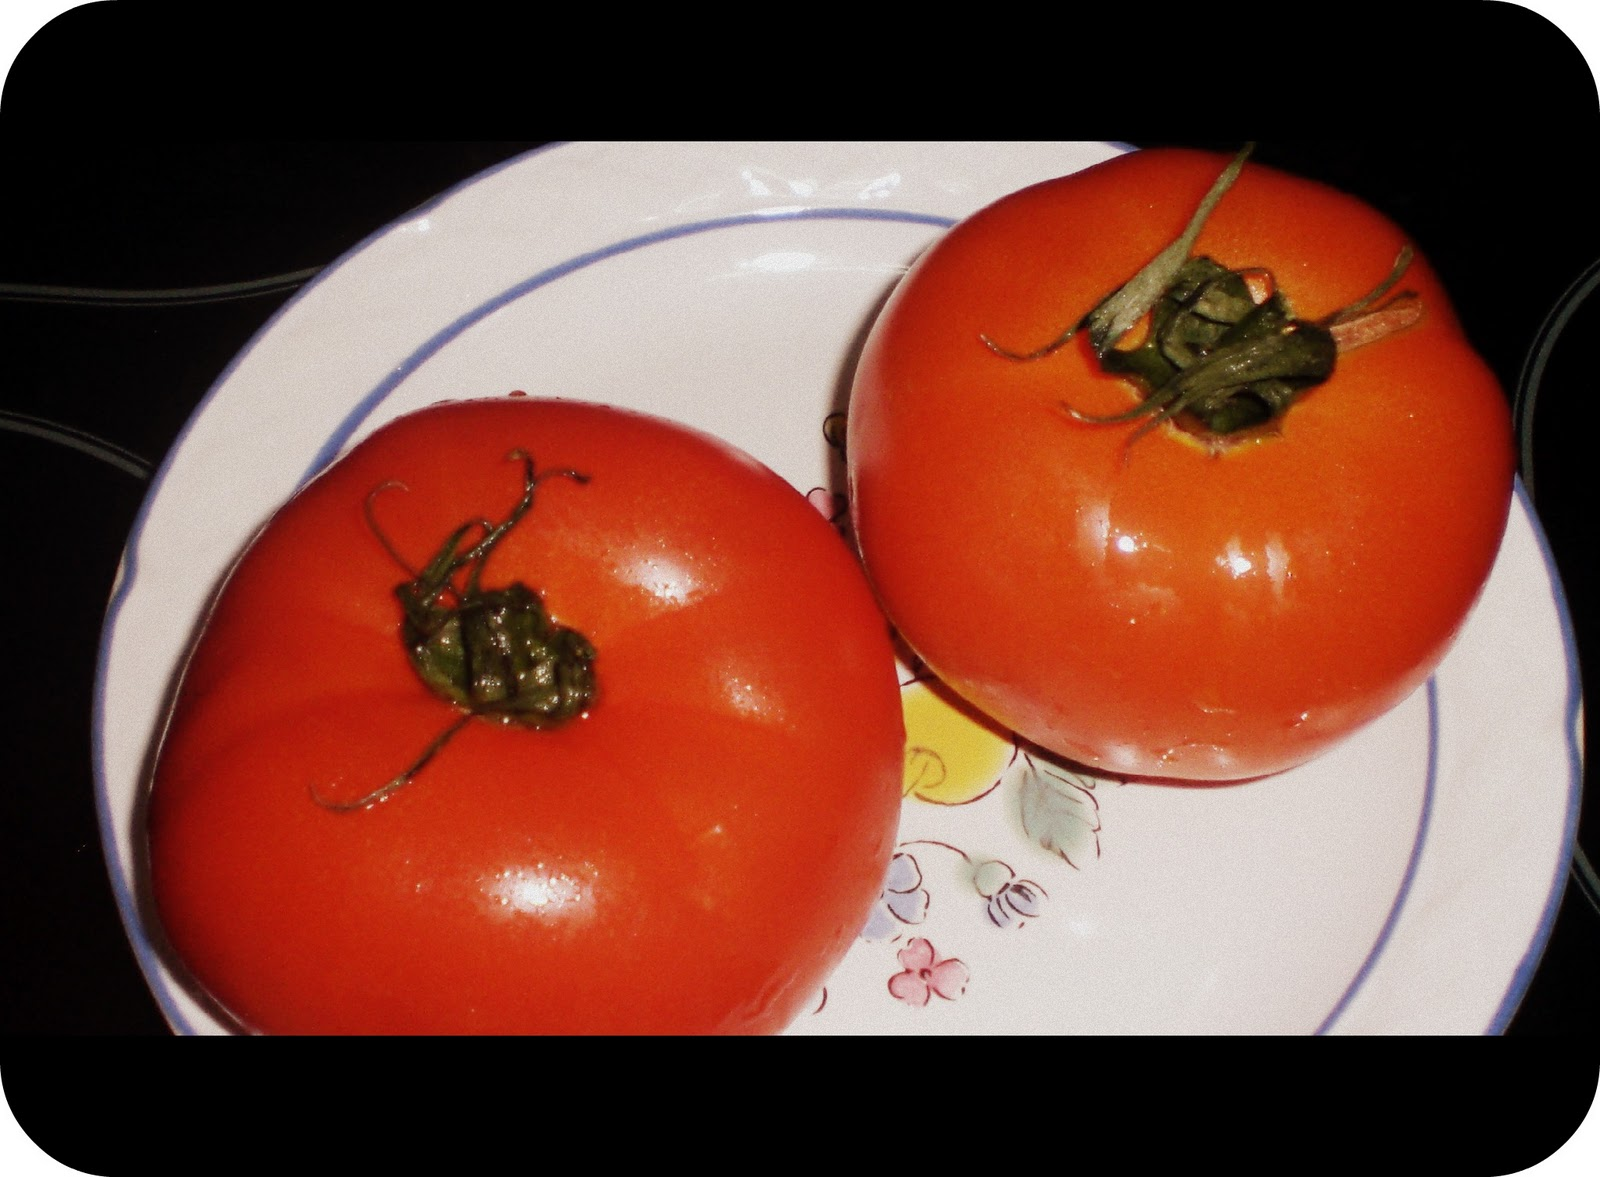 Conchic blog tomates rellenos - Tomates rellenos light ...